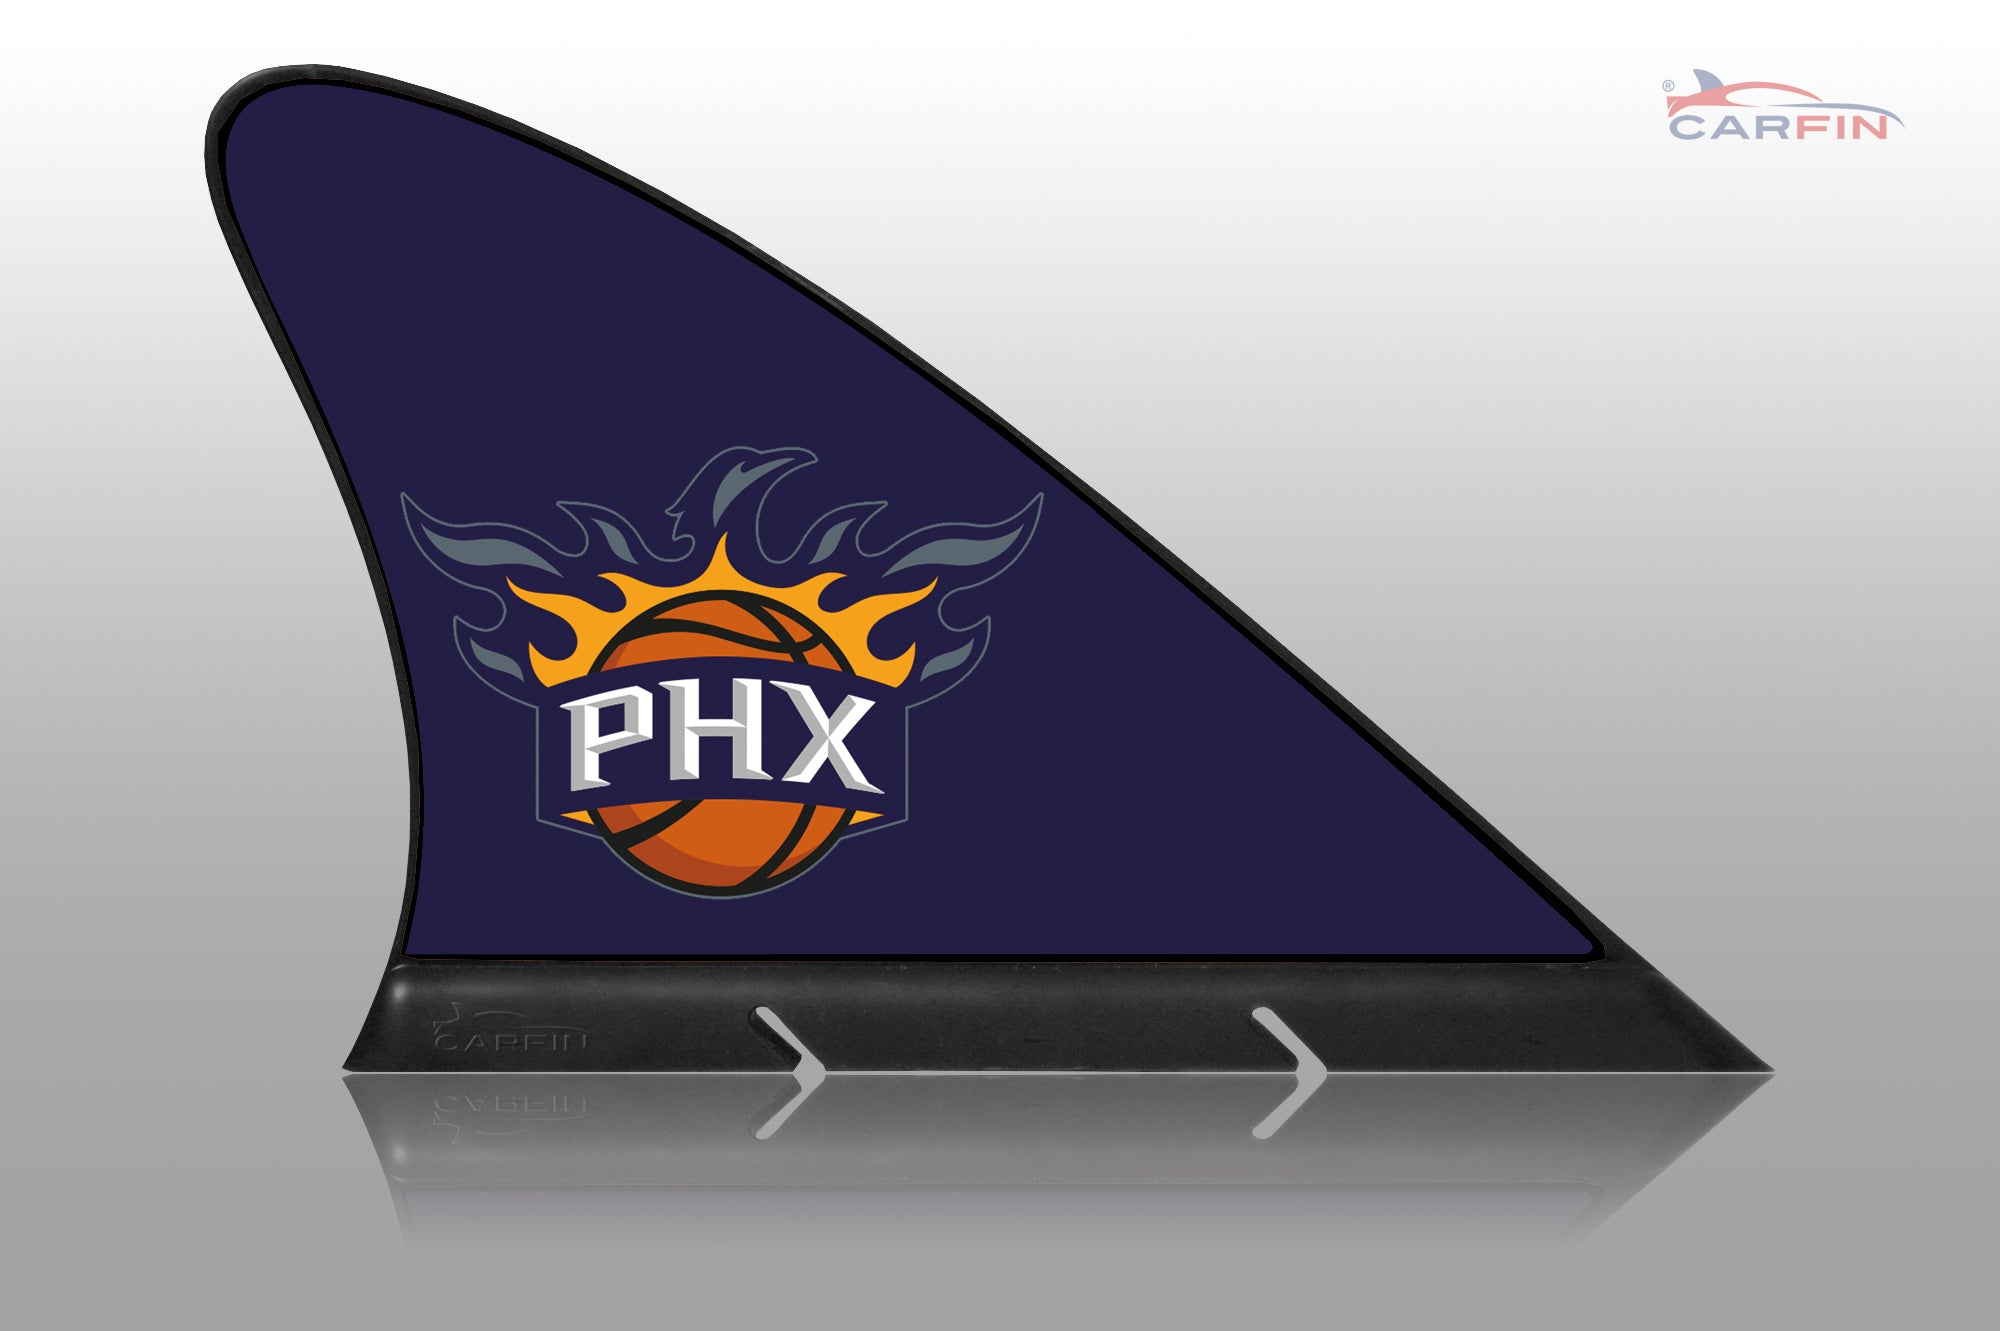 Phoenix Suns  Car Flag, CARFIN  Magnetic Car Flag. - Carfin